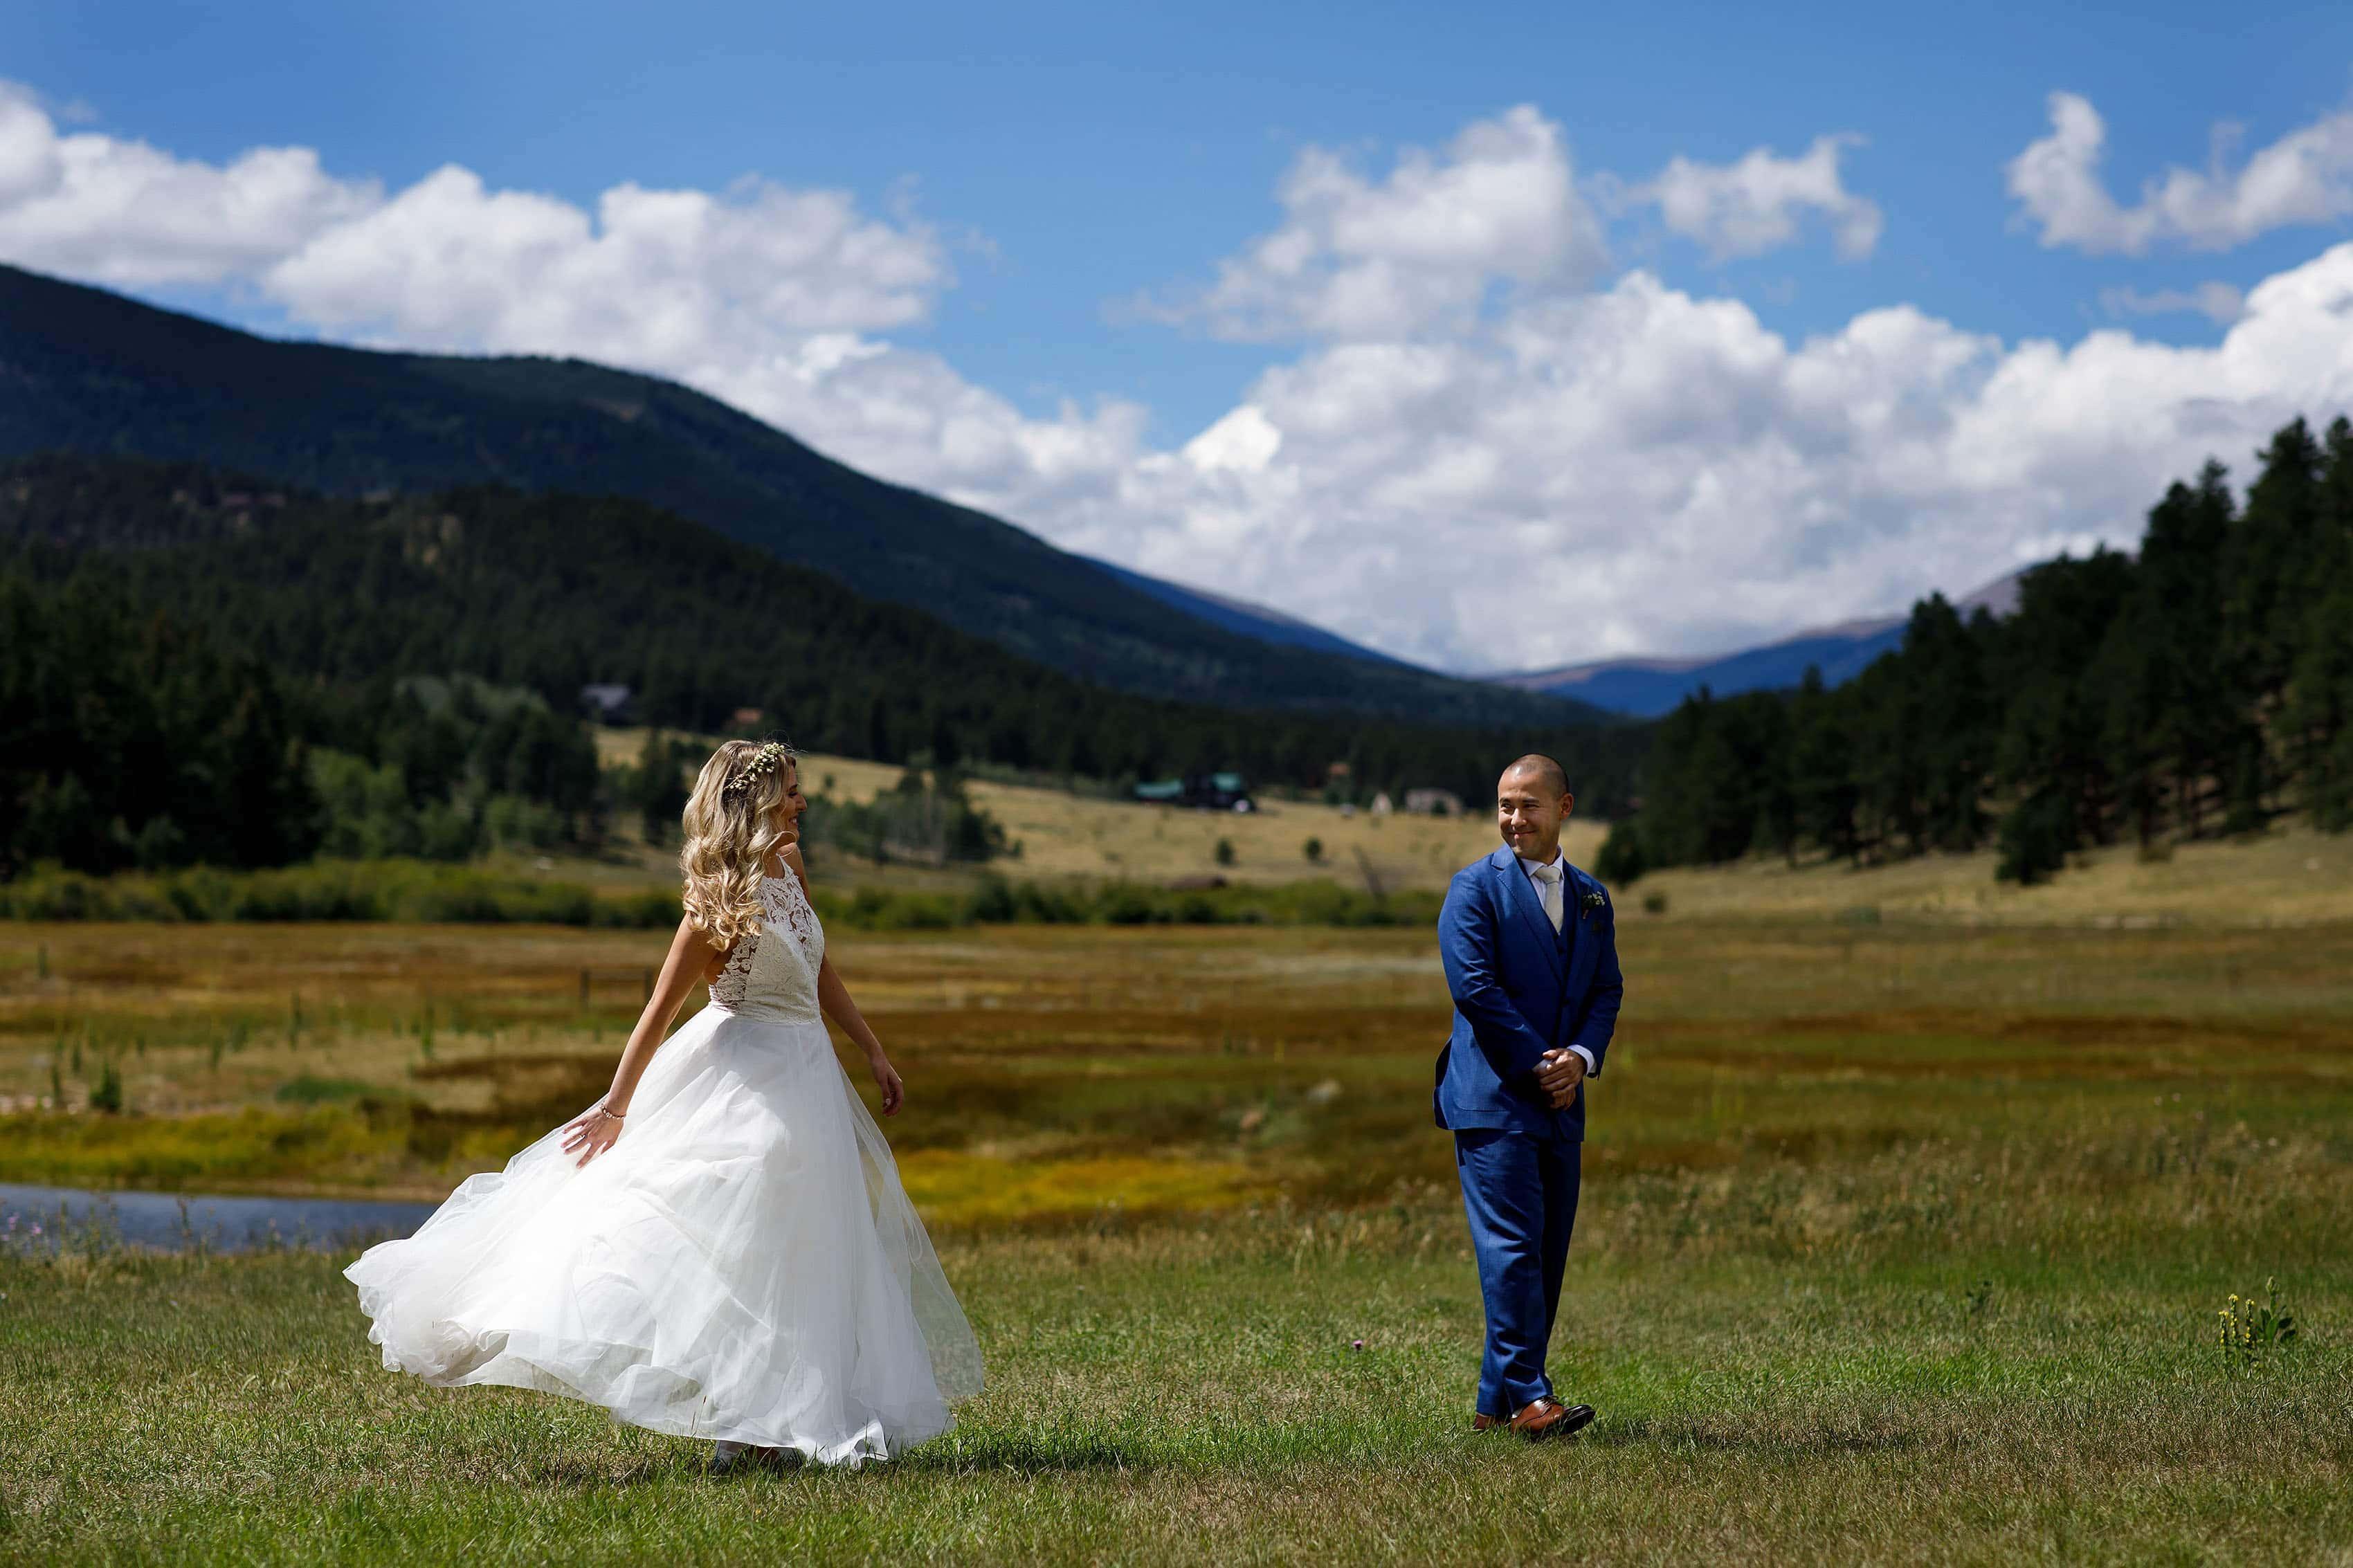 Bride and groom react during first look during their summer wedding at Deer Creek Valley Ranch